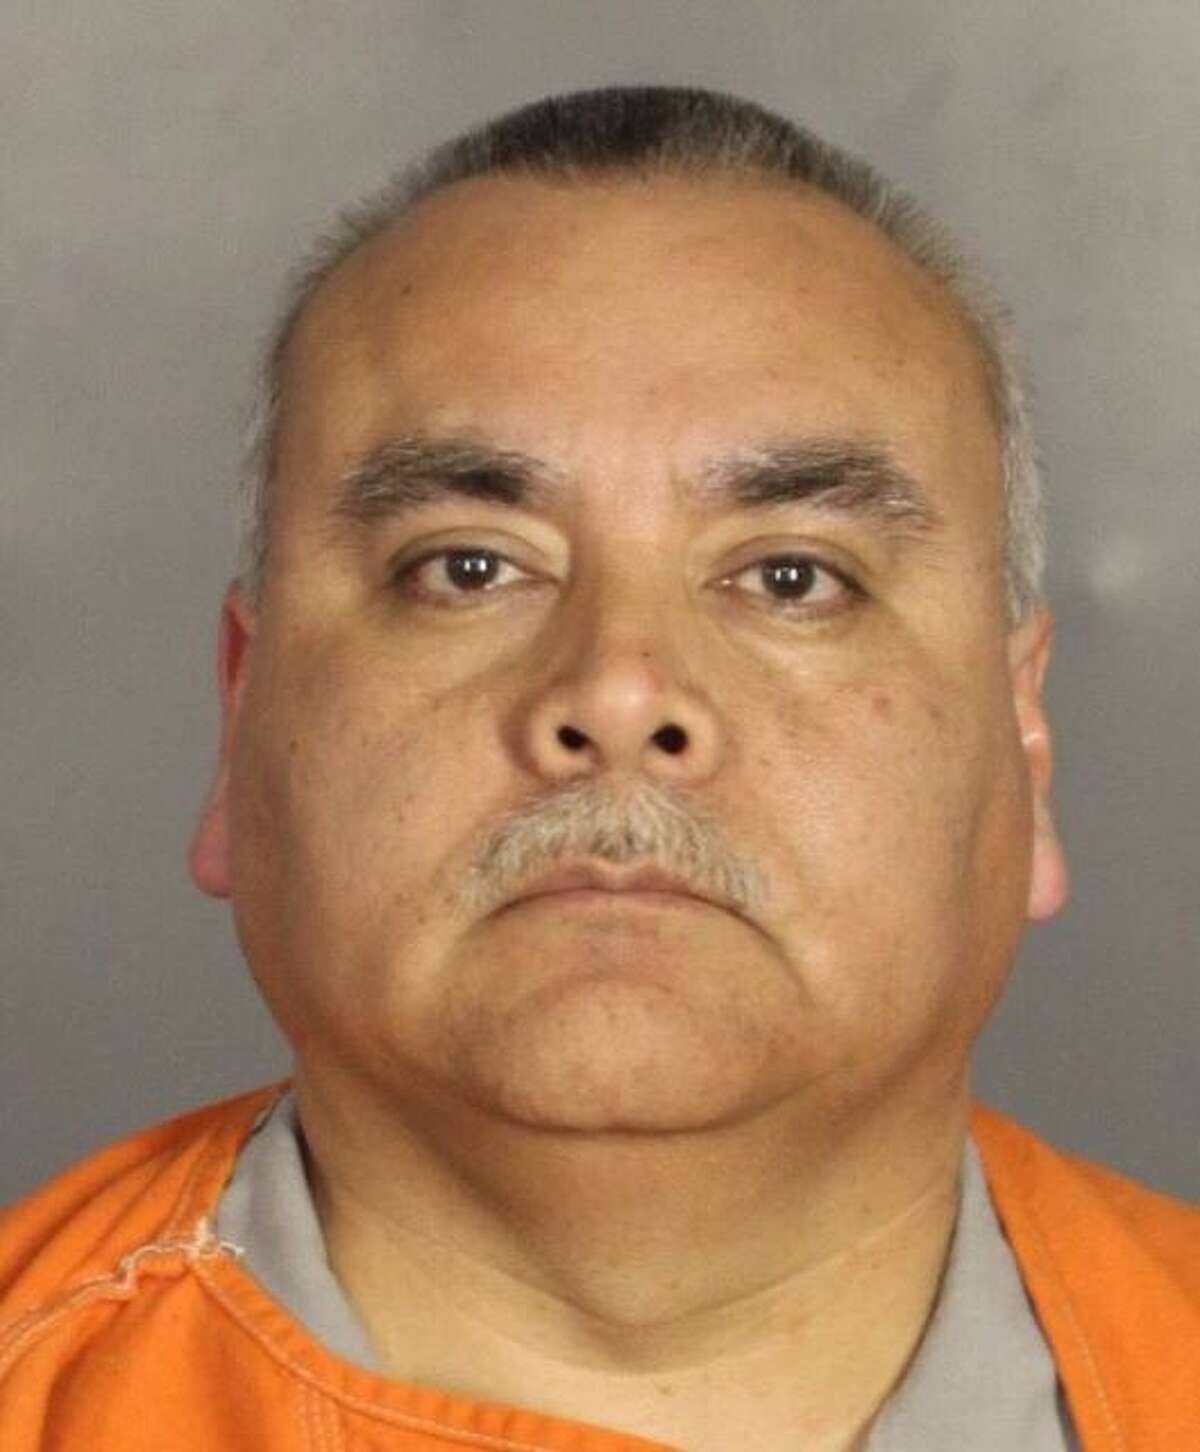 Steve Canava, a 51-year-old deputy constable for McLennan County, was arrested Friday for allegedly soliciting a prostitute under the age of 18, a second degree felony punishable by up to 20 years in prison. McLennan County Sheriff Parnell McNamara told the Waco Tribune-Herald that Canava has been an officer for